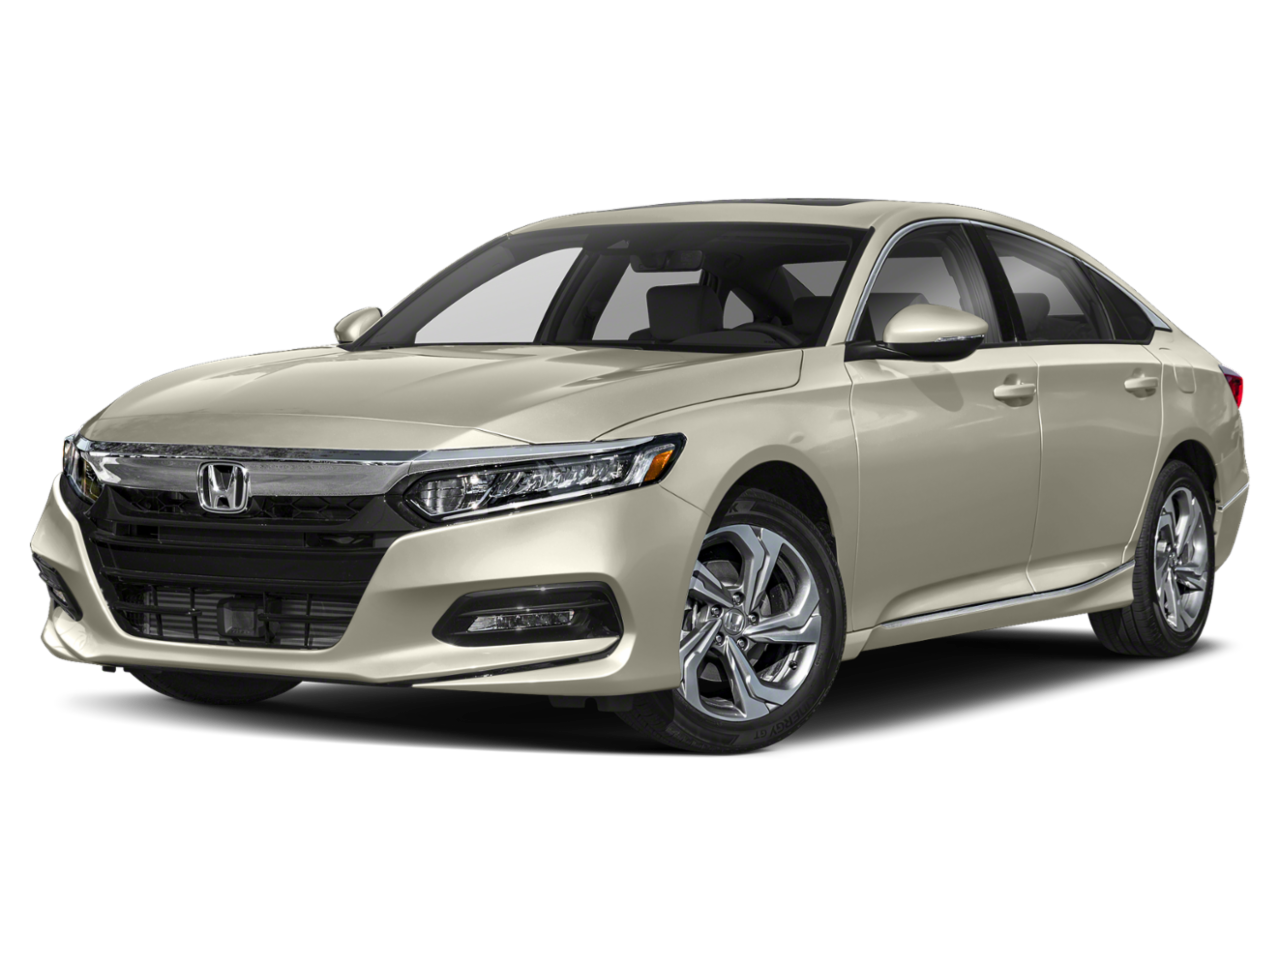 Honda 2020 Accord Sedan EX-L 2.0T